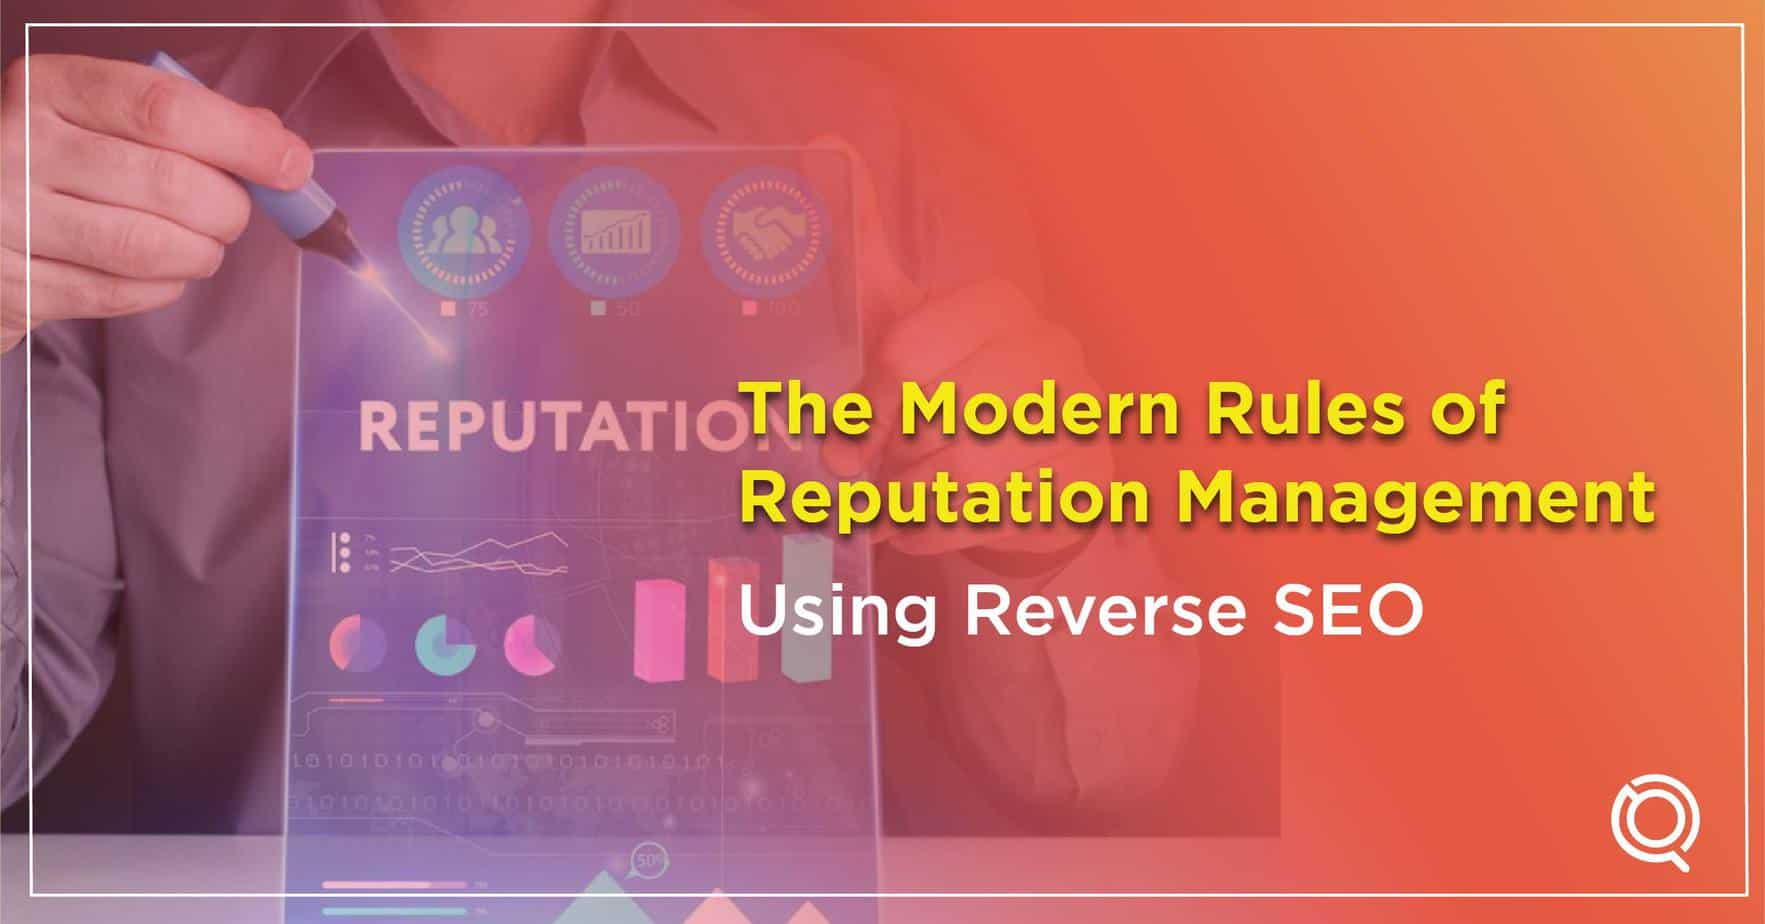 Reverse SEO Modern Rules of Reputation Management - One Search Pro SEO Agency Malaysia